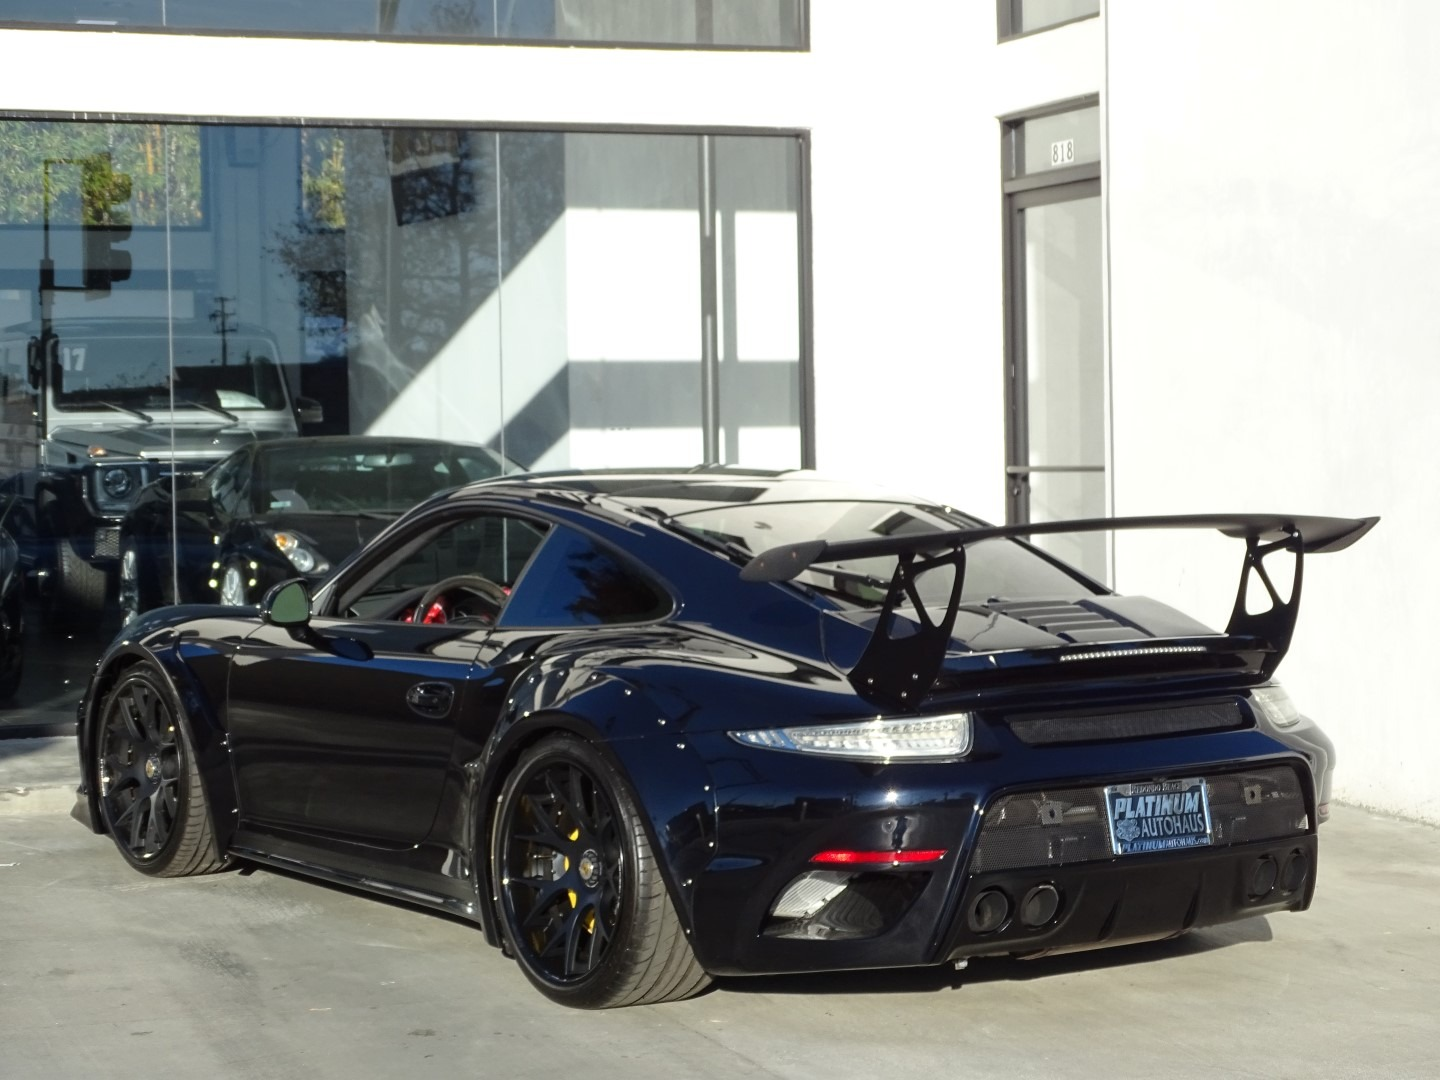 Used-2015-Porsche-911-Turbo-S--***-GEMBALLA-EDITION-***